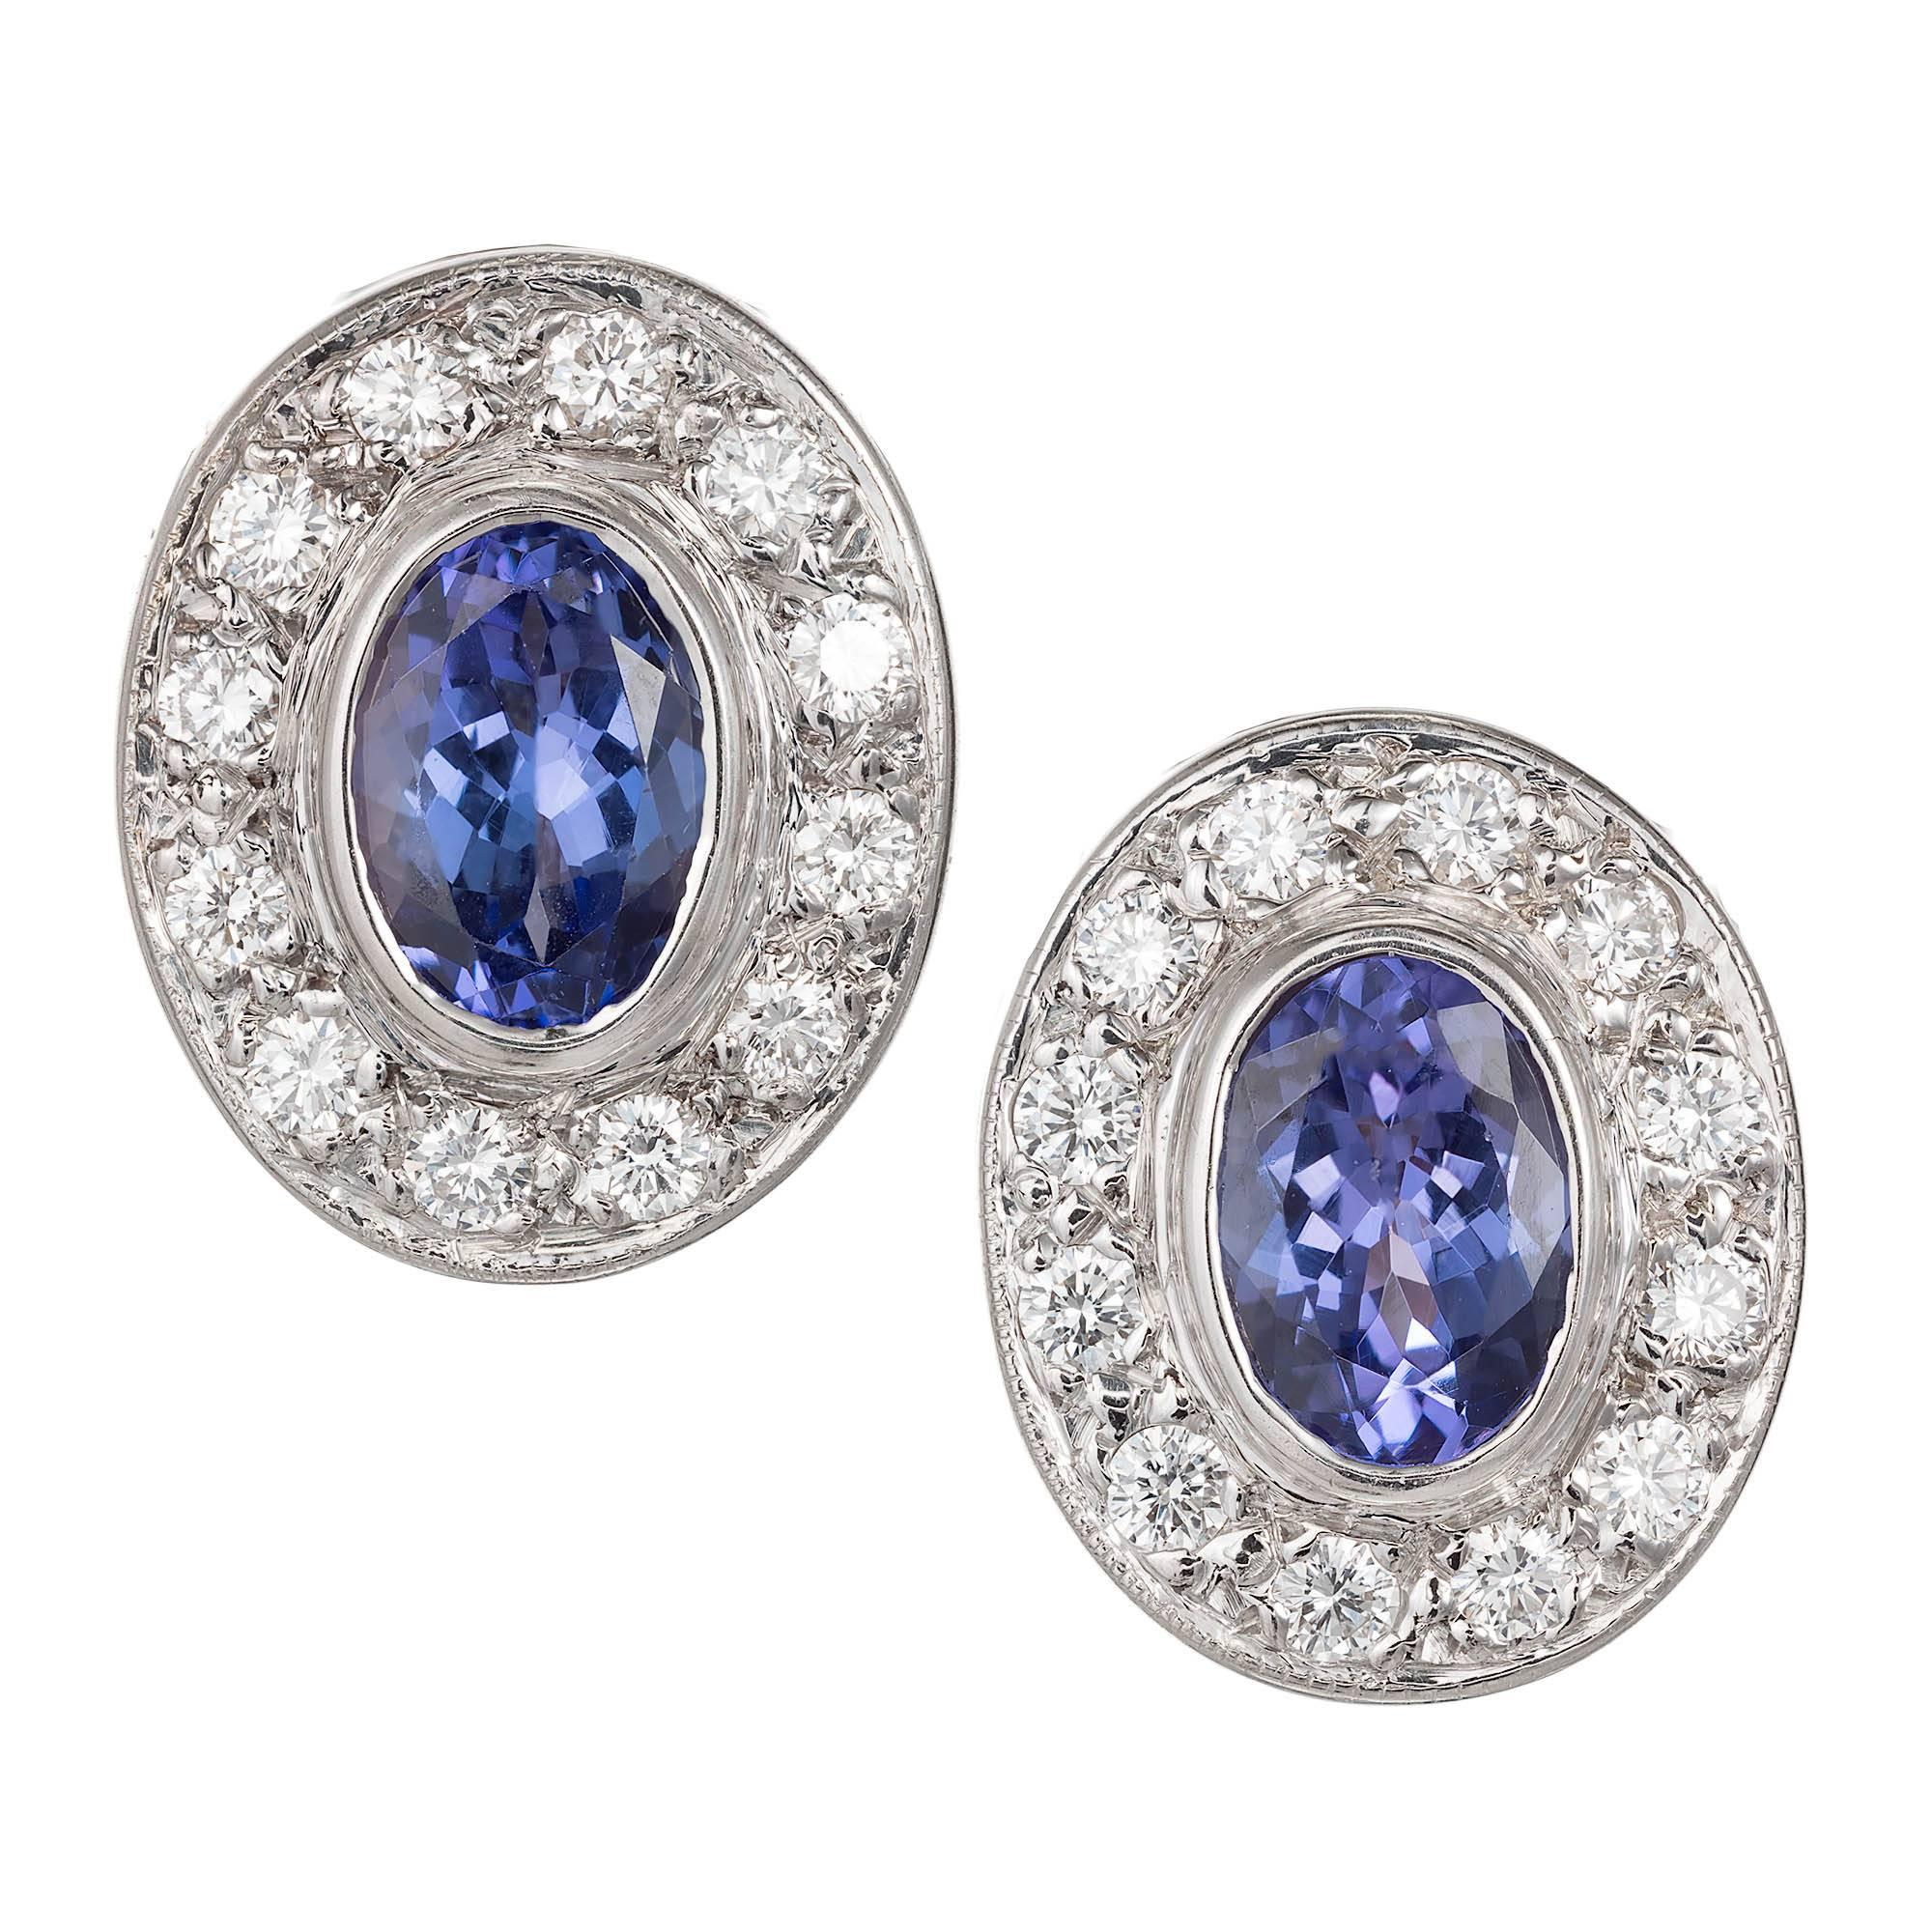 halo canadian studs diamond anniversary lugaro earrings collection stud